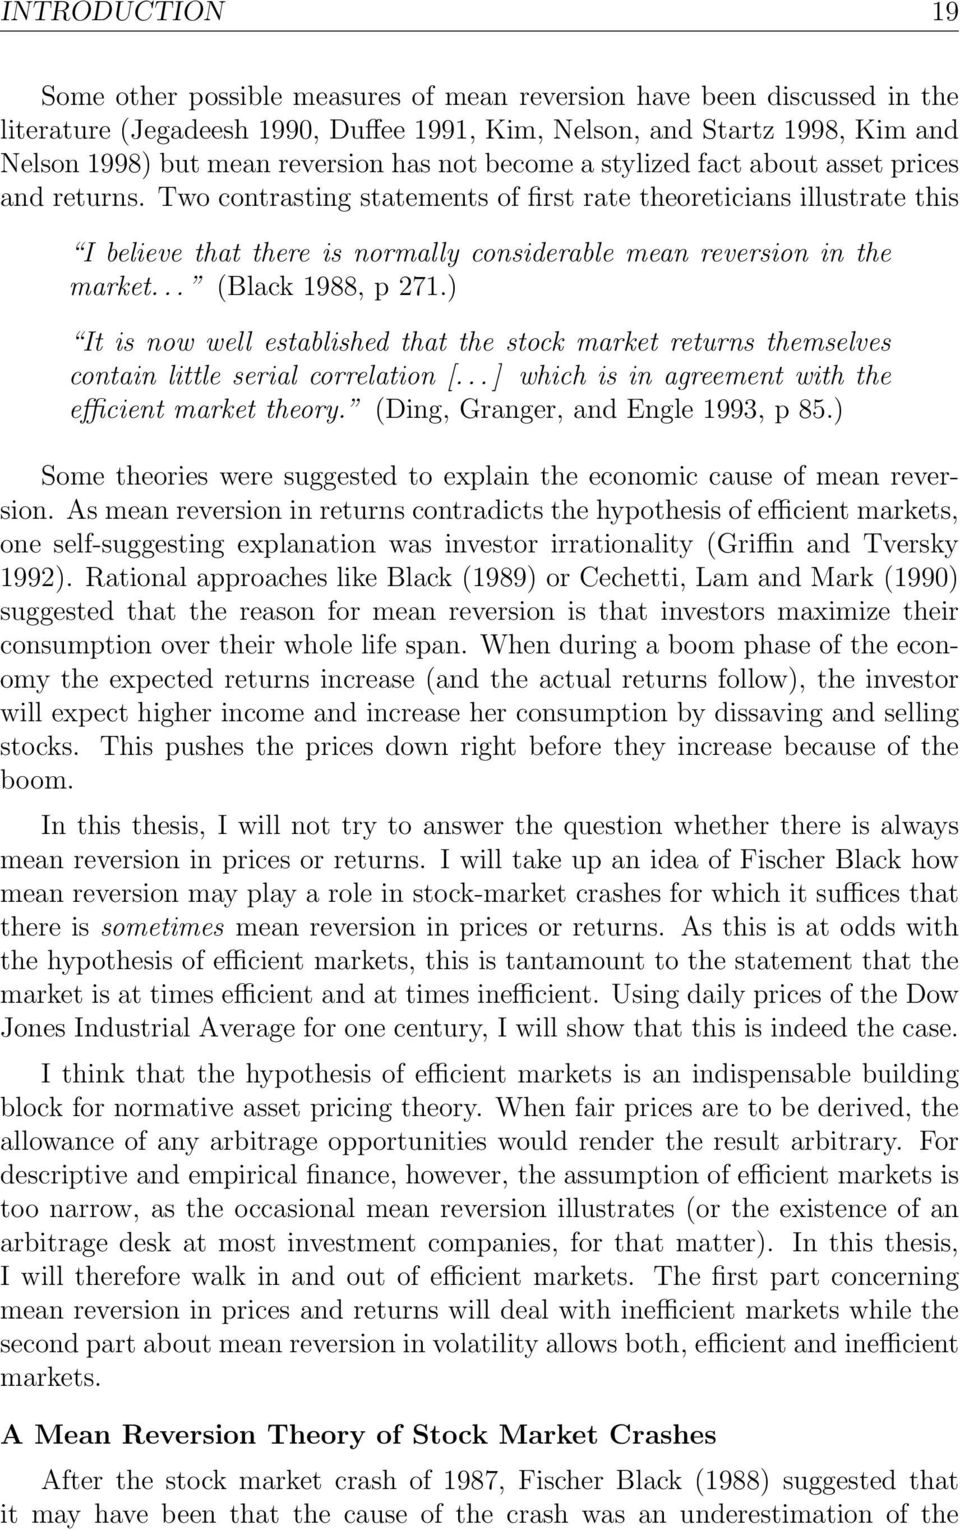 reversion in the market (Black 1988, p 271) It is now well established that the stock market returns themselves contain little serial correlation [] which is in agreement with the efficient market